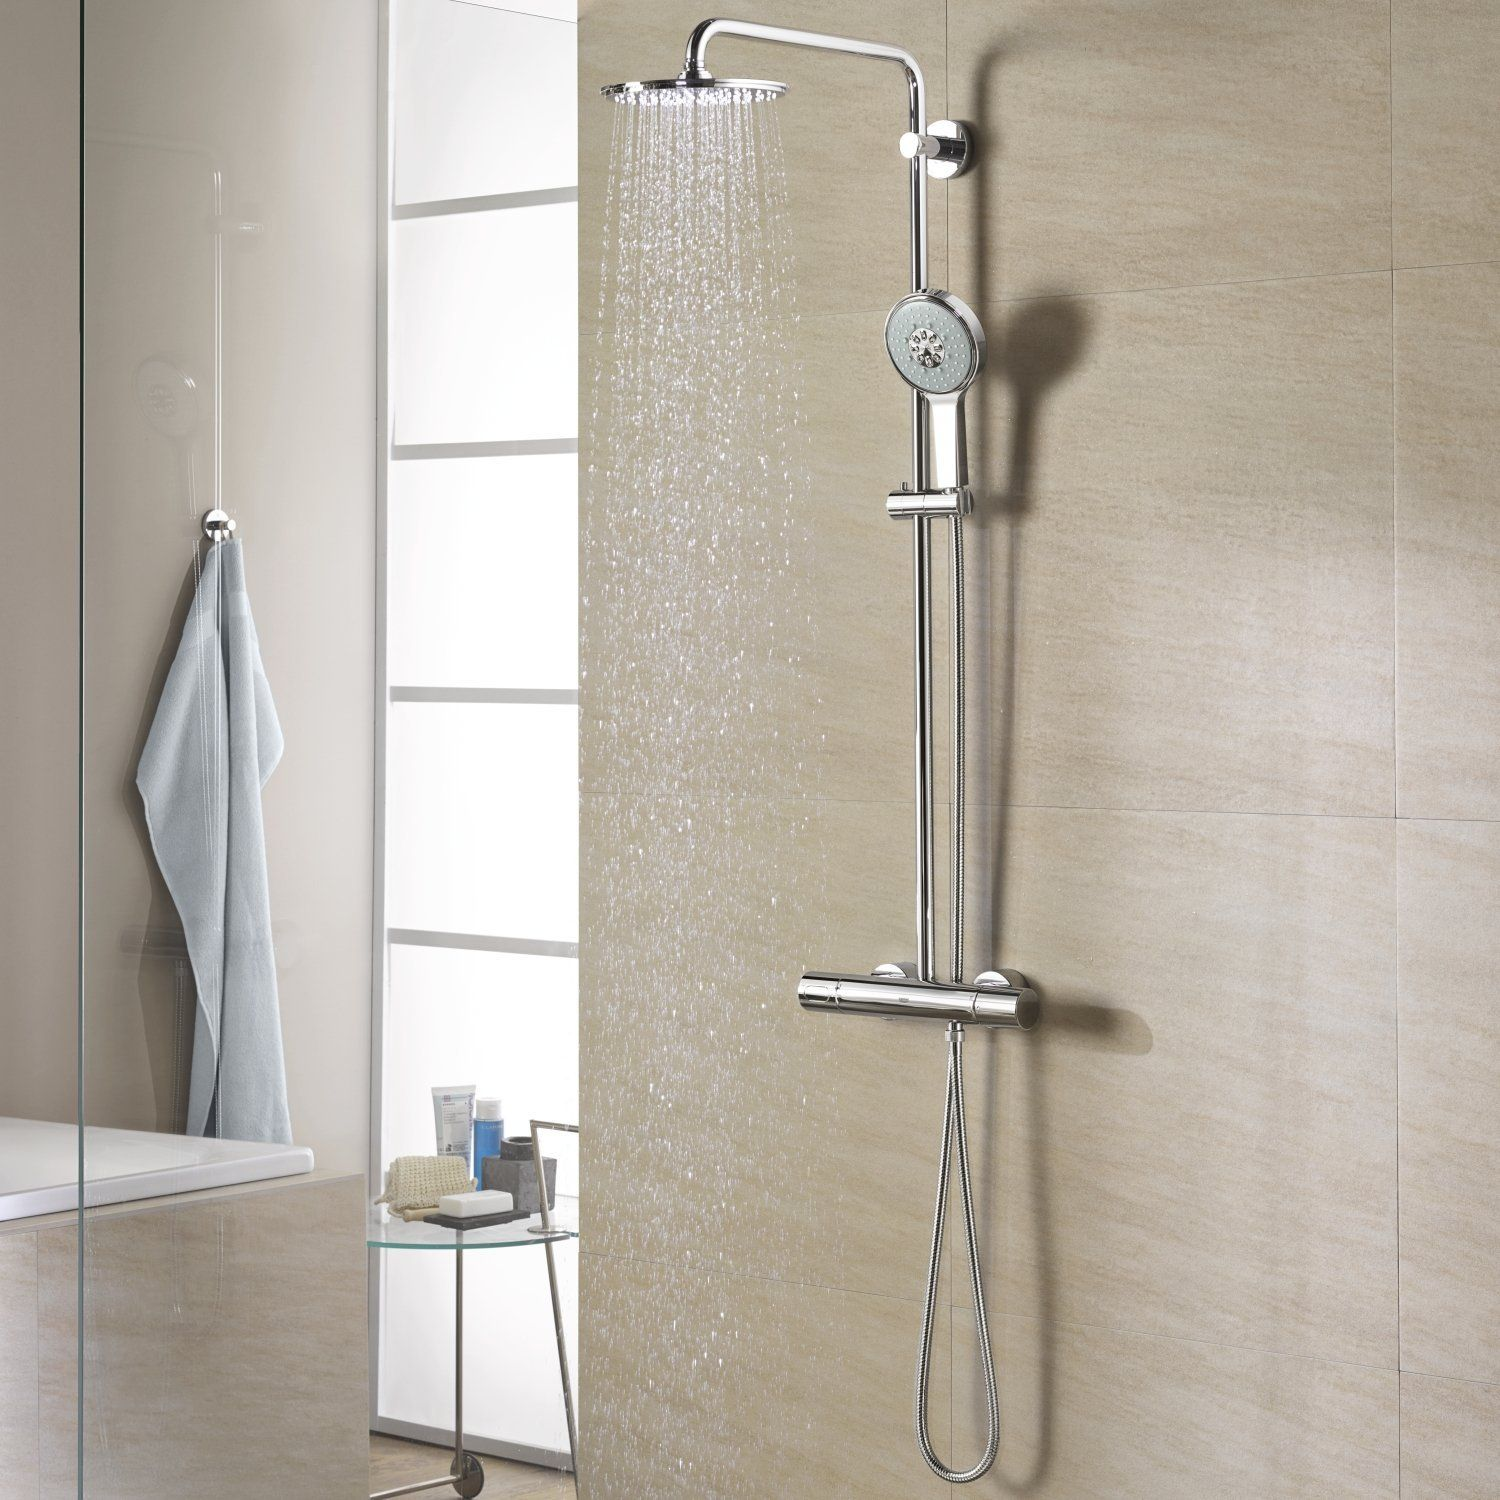 grohe 27968000 rainshower 310 shower system with thermostat baumarkt house build